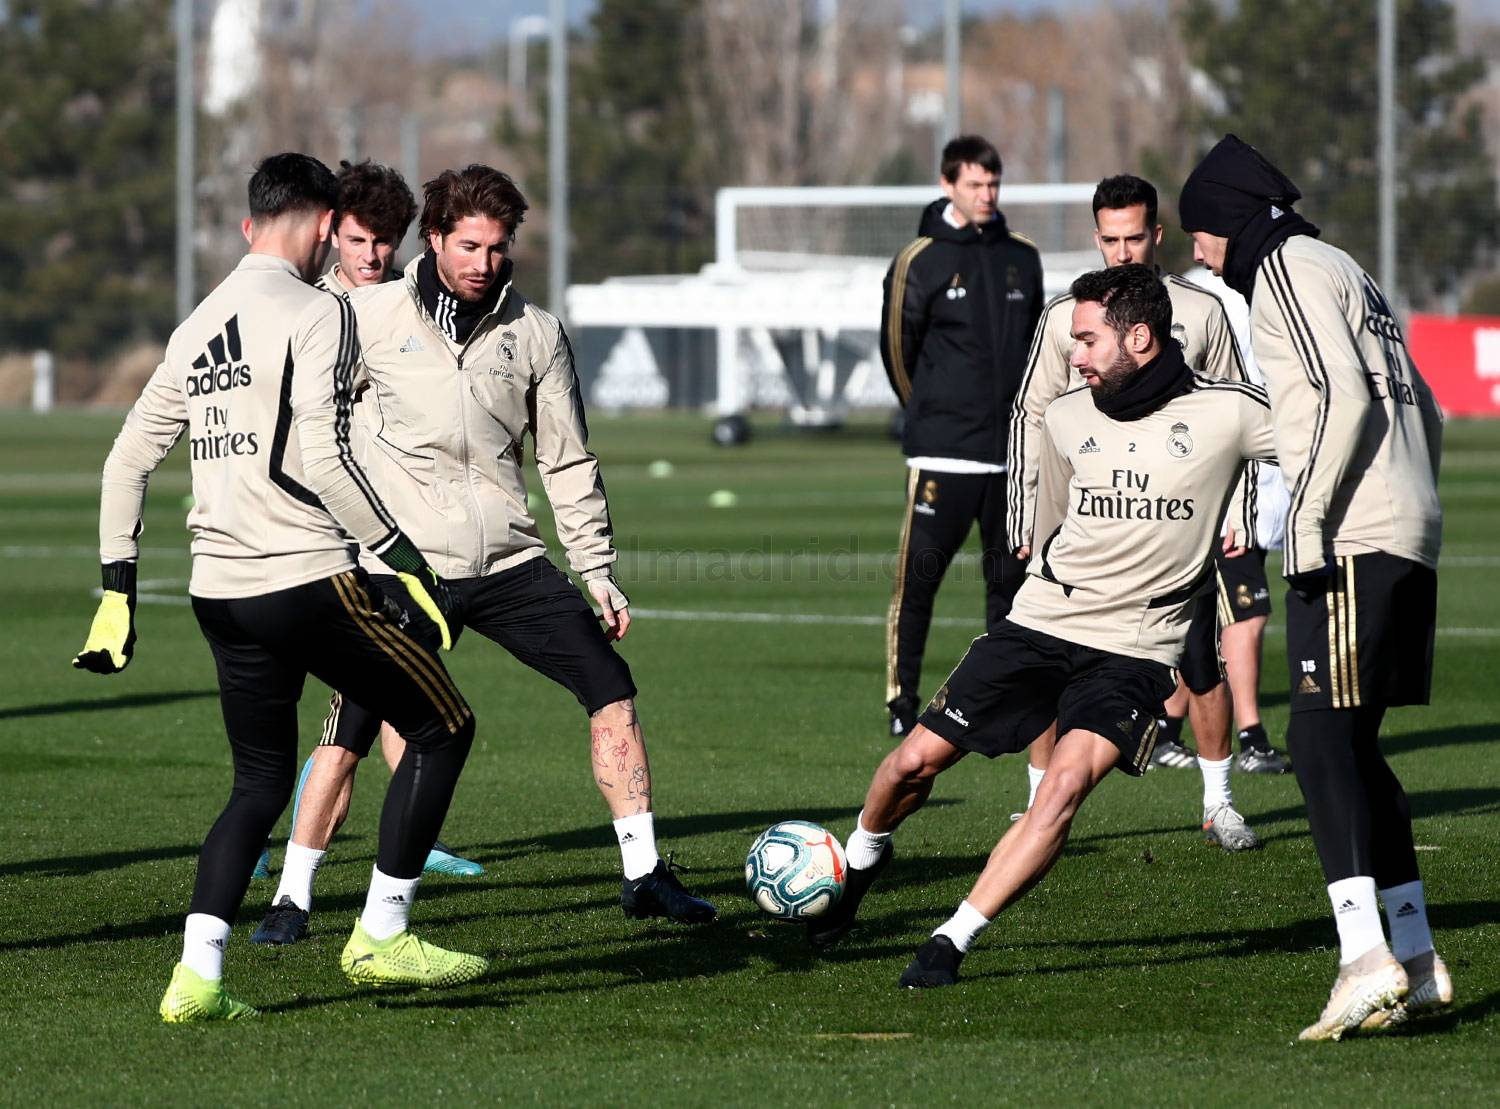 Real Madrid - Entrenamiento del Real Madrid  - 17-01-2020